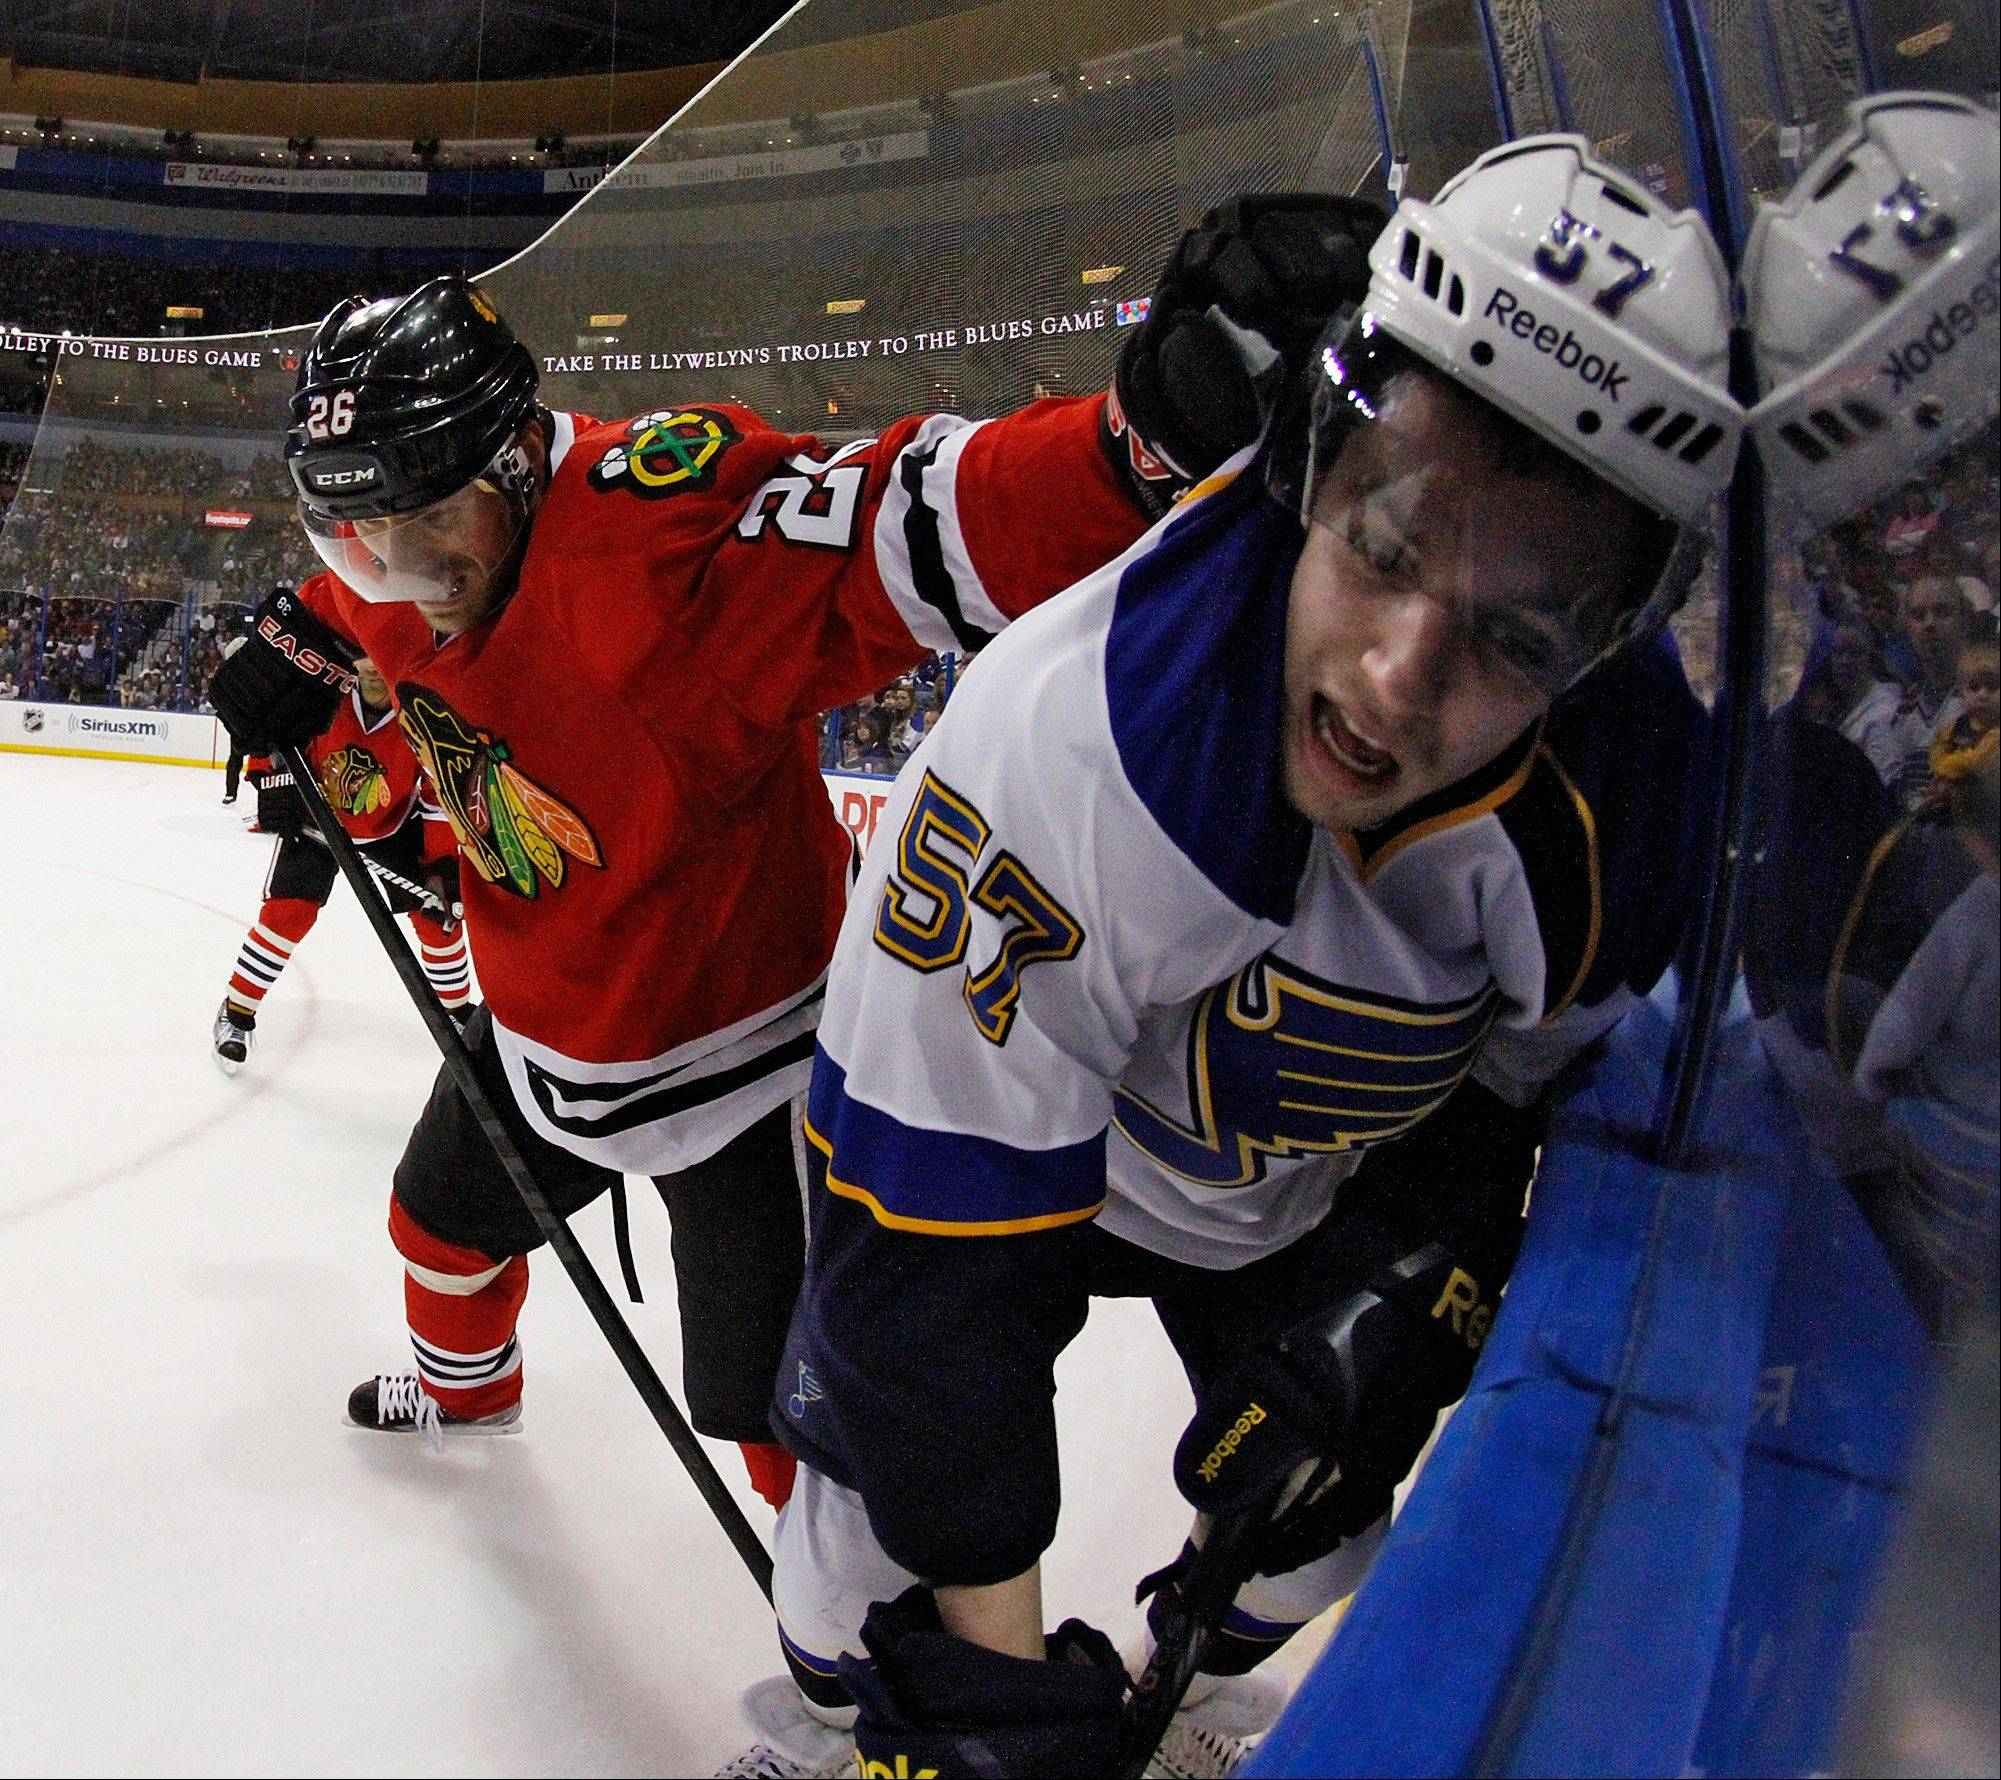 Blackhawks center Michal Handzus, left, pins St. Louis Blues left wing David Perron against the boards in third period action during a game between the Blues and the Blackhawks on Sunday April 14, 2013, at the Scottrade Center in St. Louis.